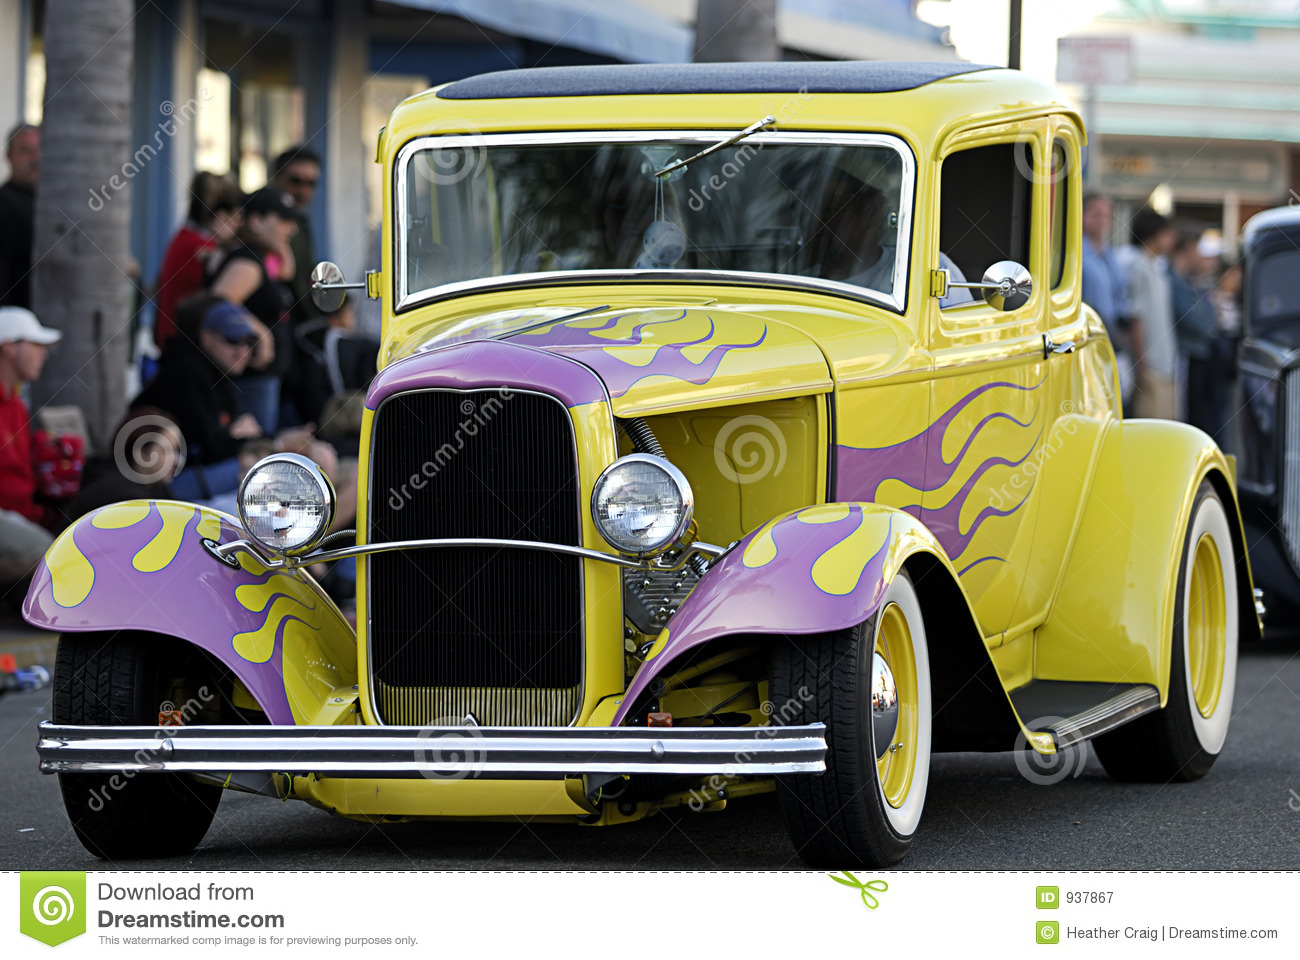 classic old car yellow pink flames royalty free stock photography